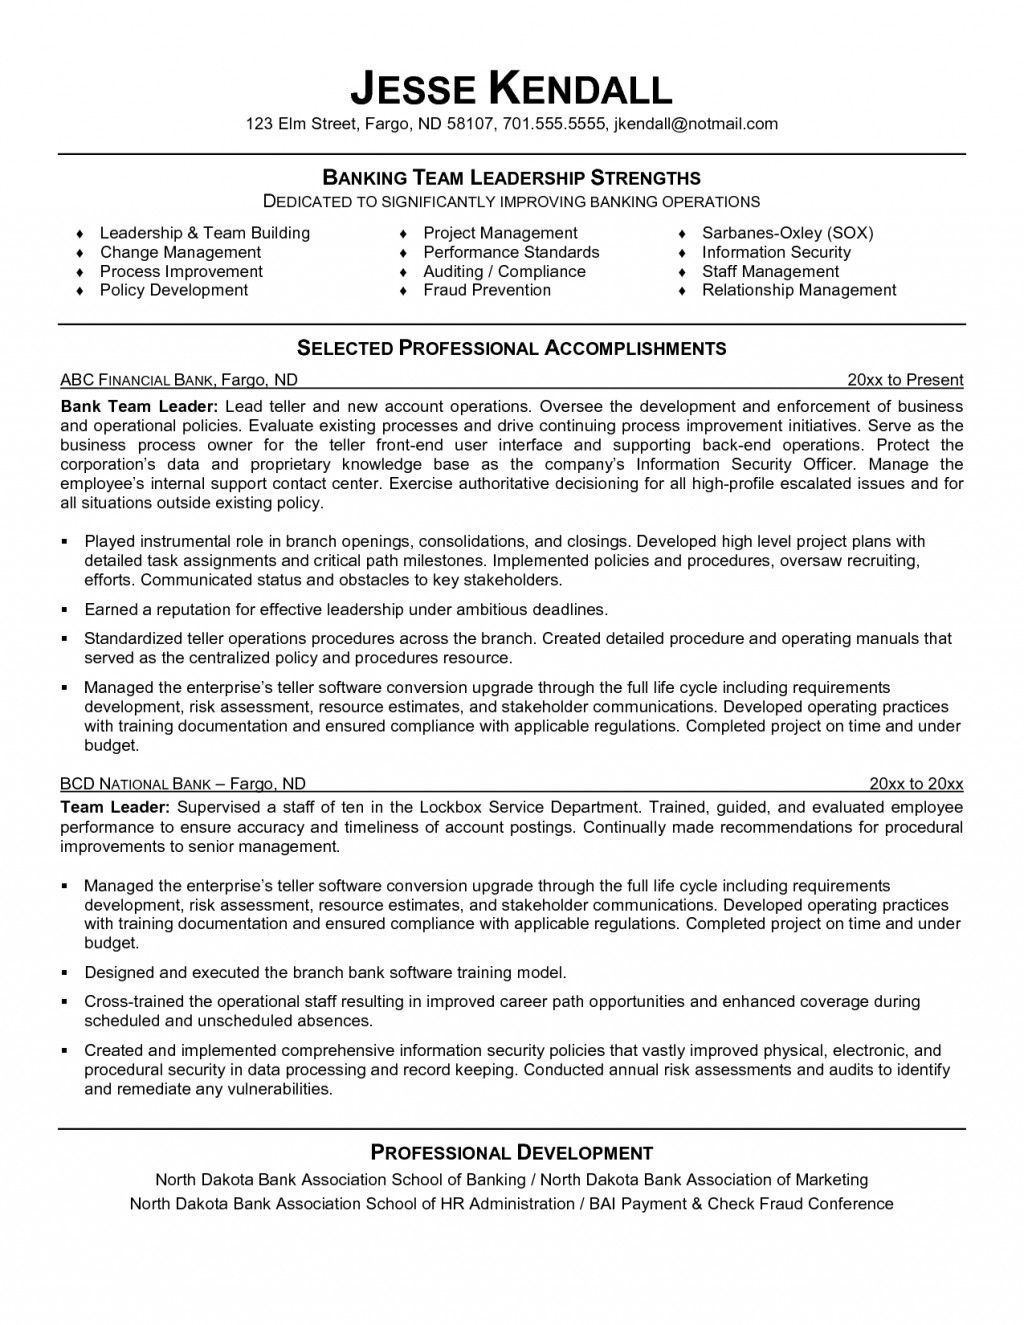 resume examples leadership skills templates bank strong pharmacist builder college Resume Strong Leadership Skills Resume